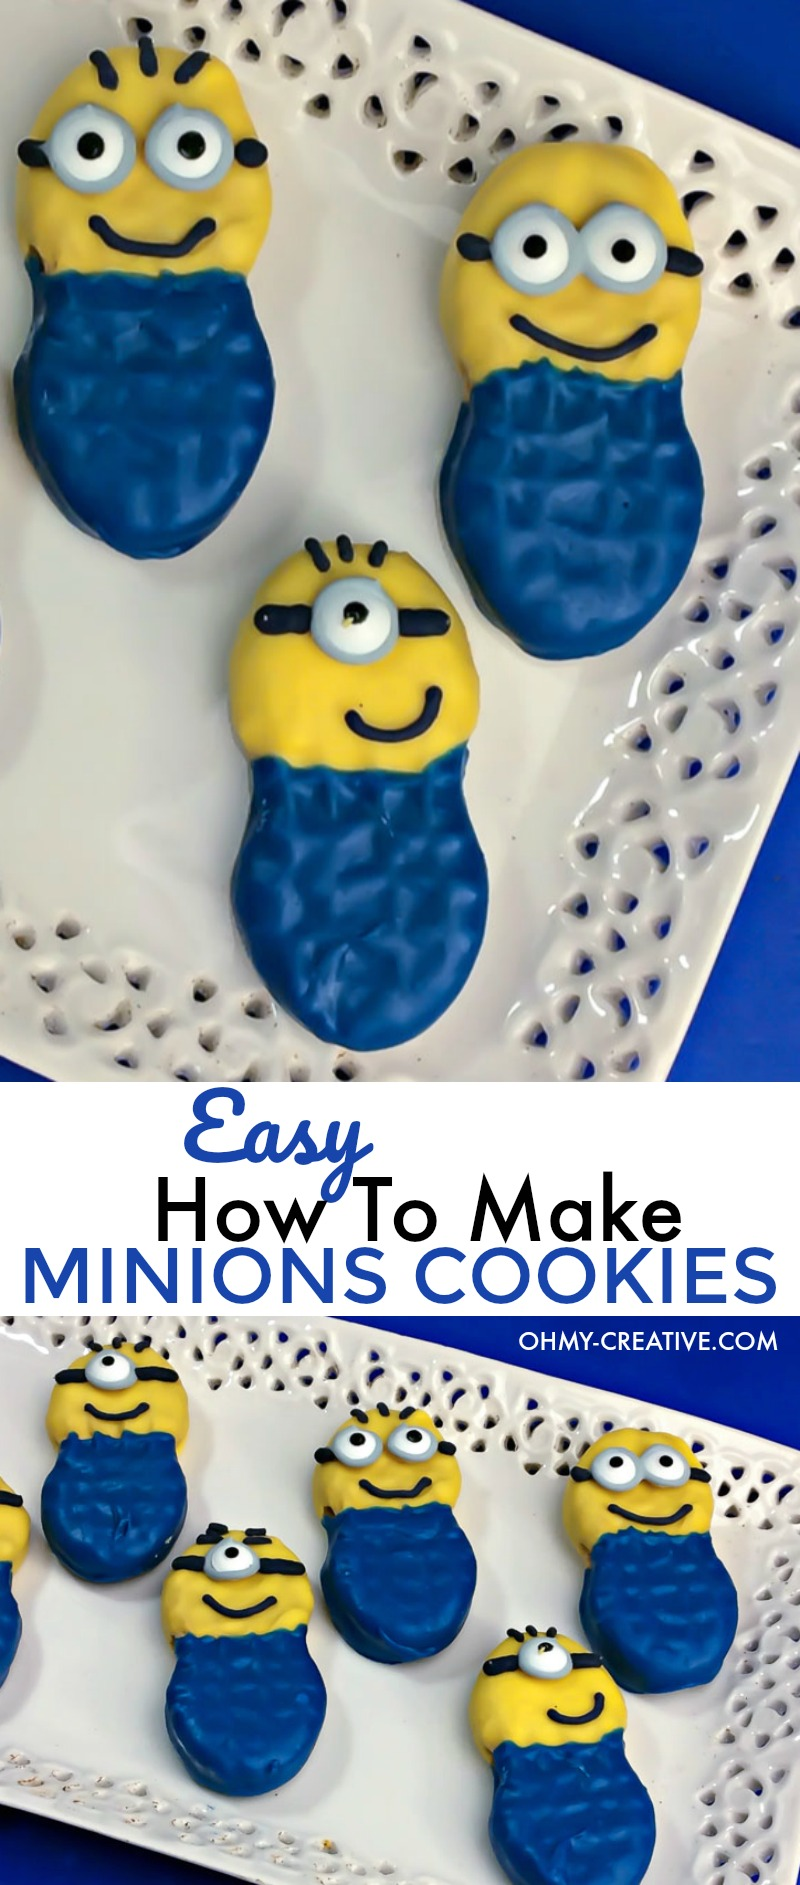 How to make Minions Cookies | OHMY-CREATIVE.COM | Minion Dessert | Minion Party | How to make Minion goggles | Minion Craft | Nutter Butter Cookies | Despicable Me